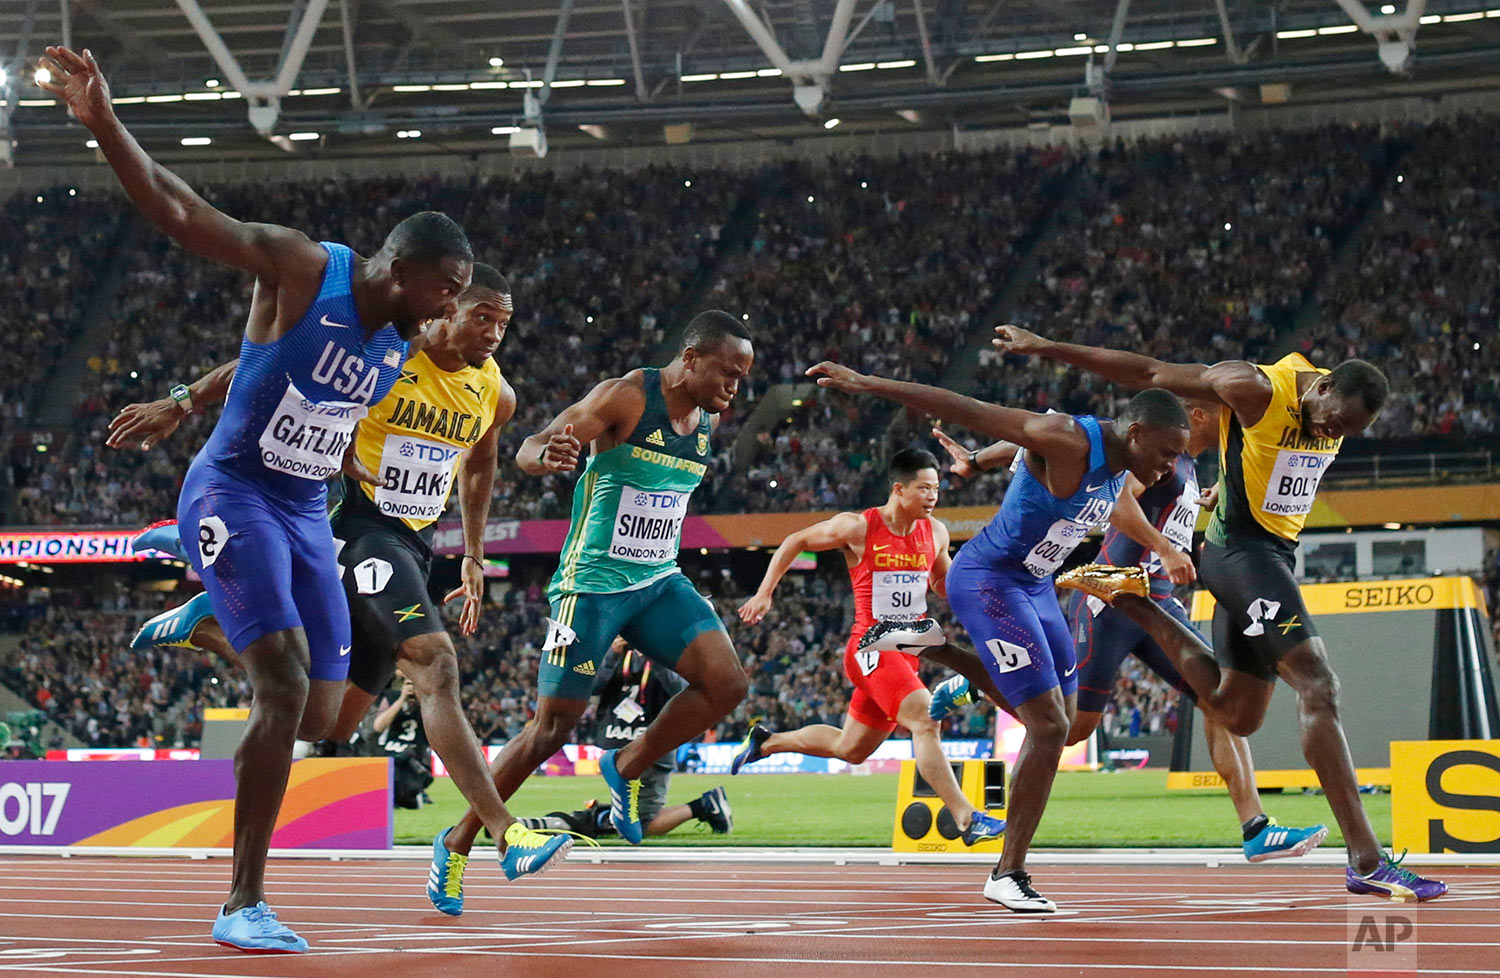 United States' Justin Gatlin, left, crosses the line to win gold ahead of silver medal winner United States' Christian Coleman, second right, and bronze medal winner Jamaica's Usain Bolt, right, in the men's 100m final during the World Athletics Championships in London Saturday, Aug. 5, 2017. (AP Photo/Matt Dunham)